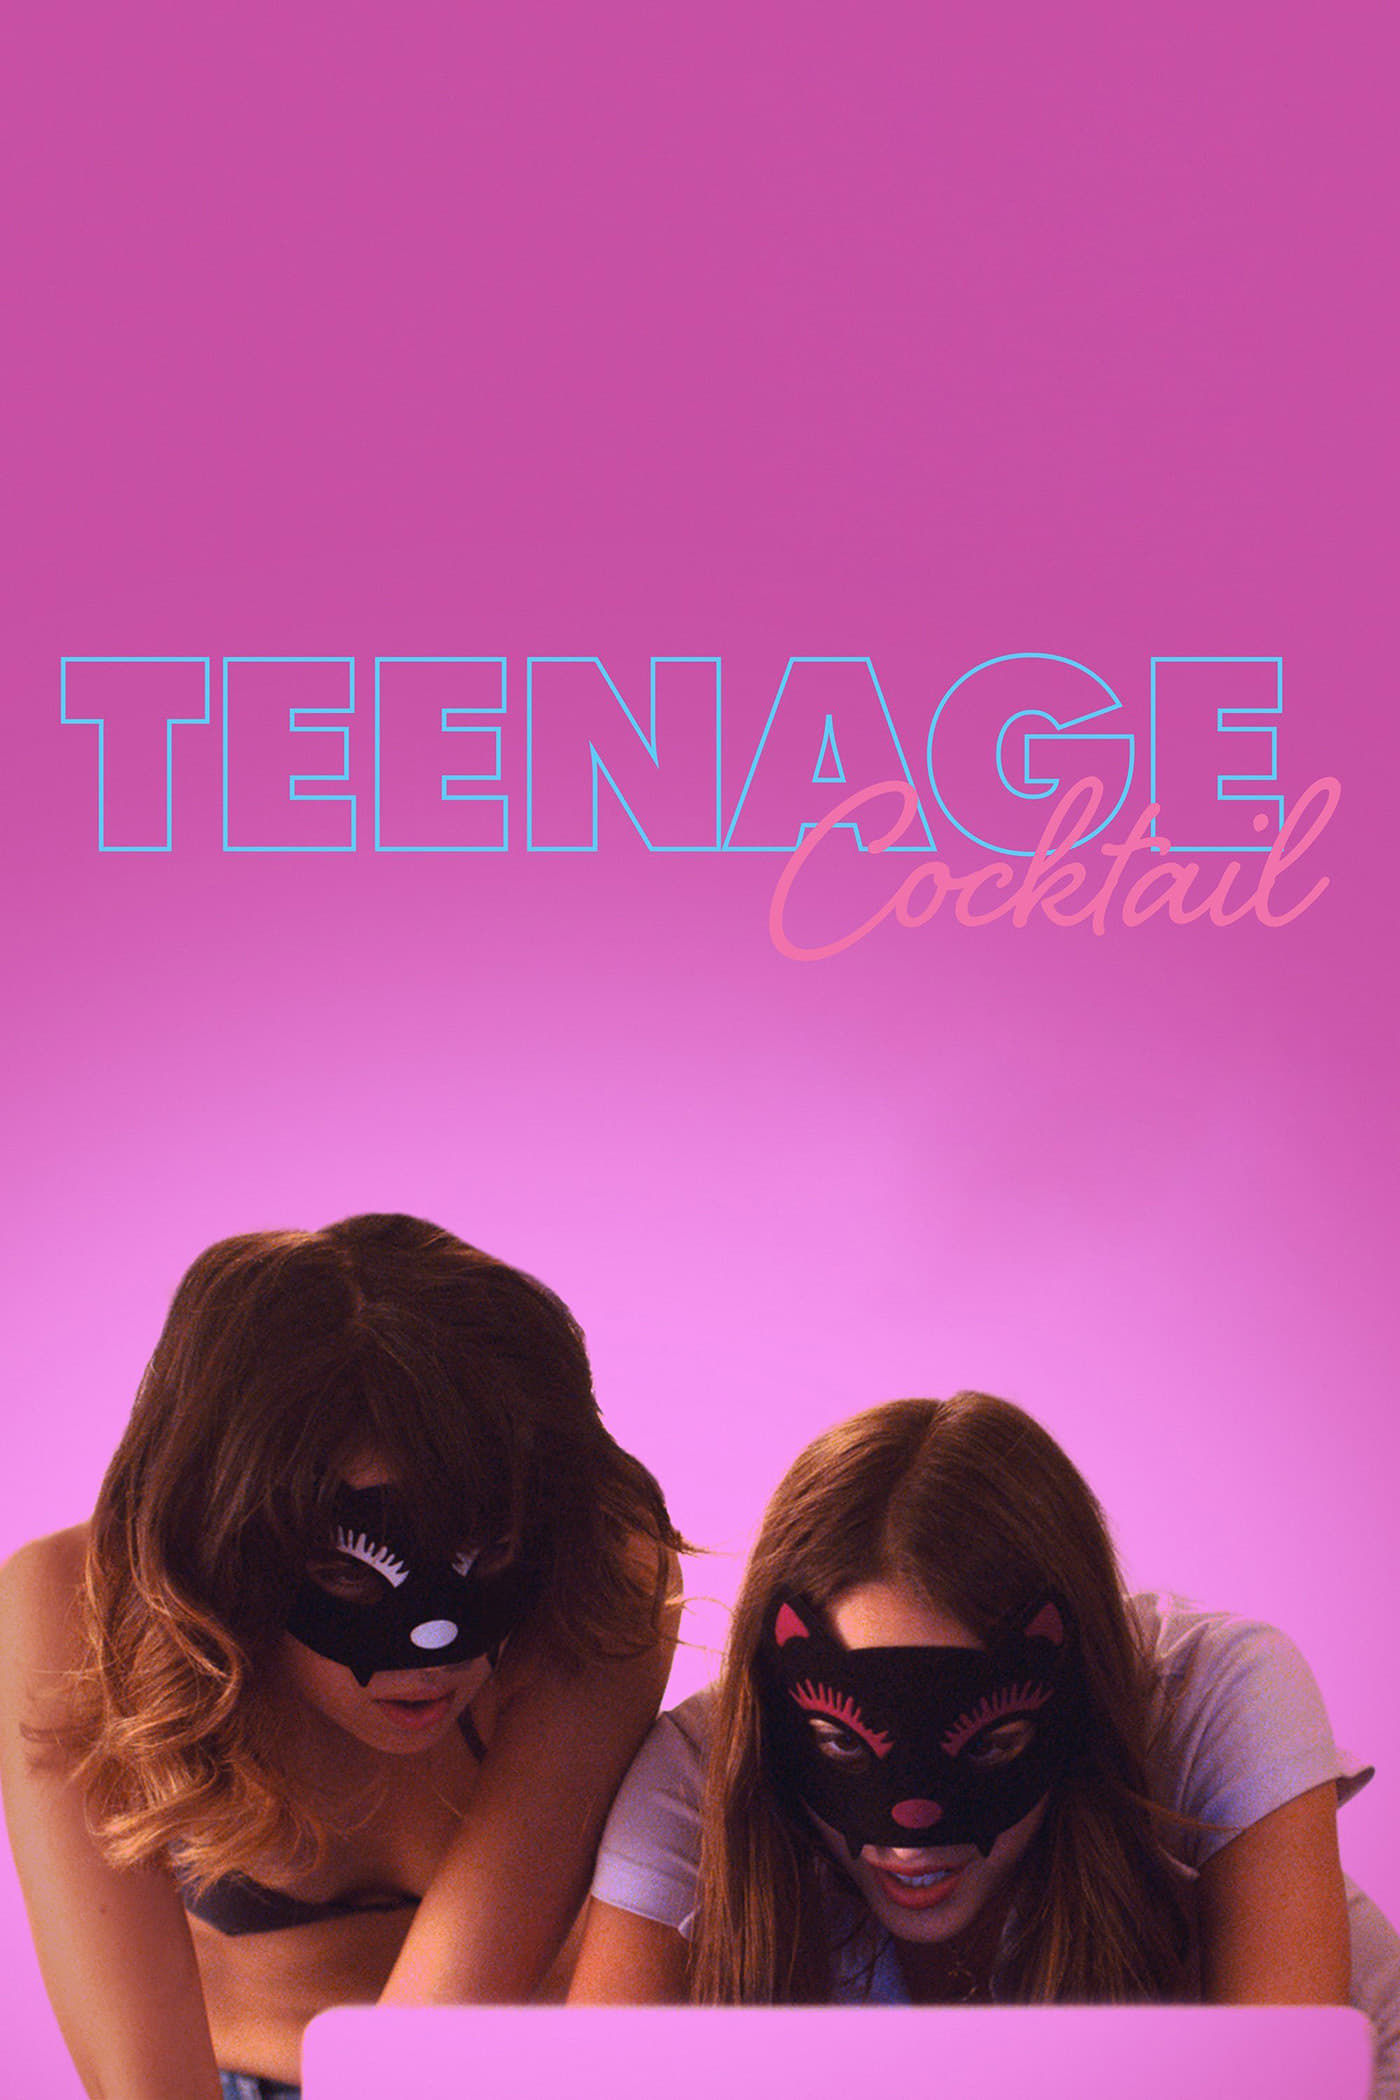 Póster Teenage Cocktail